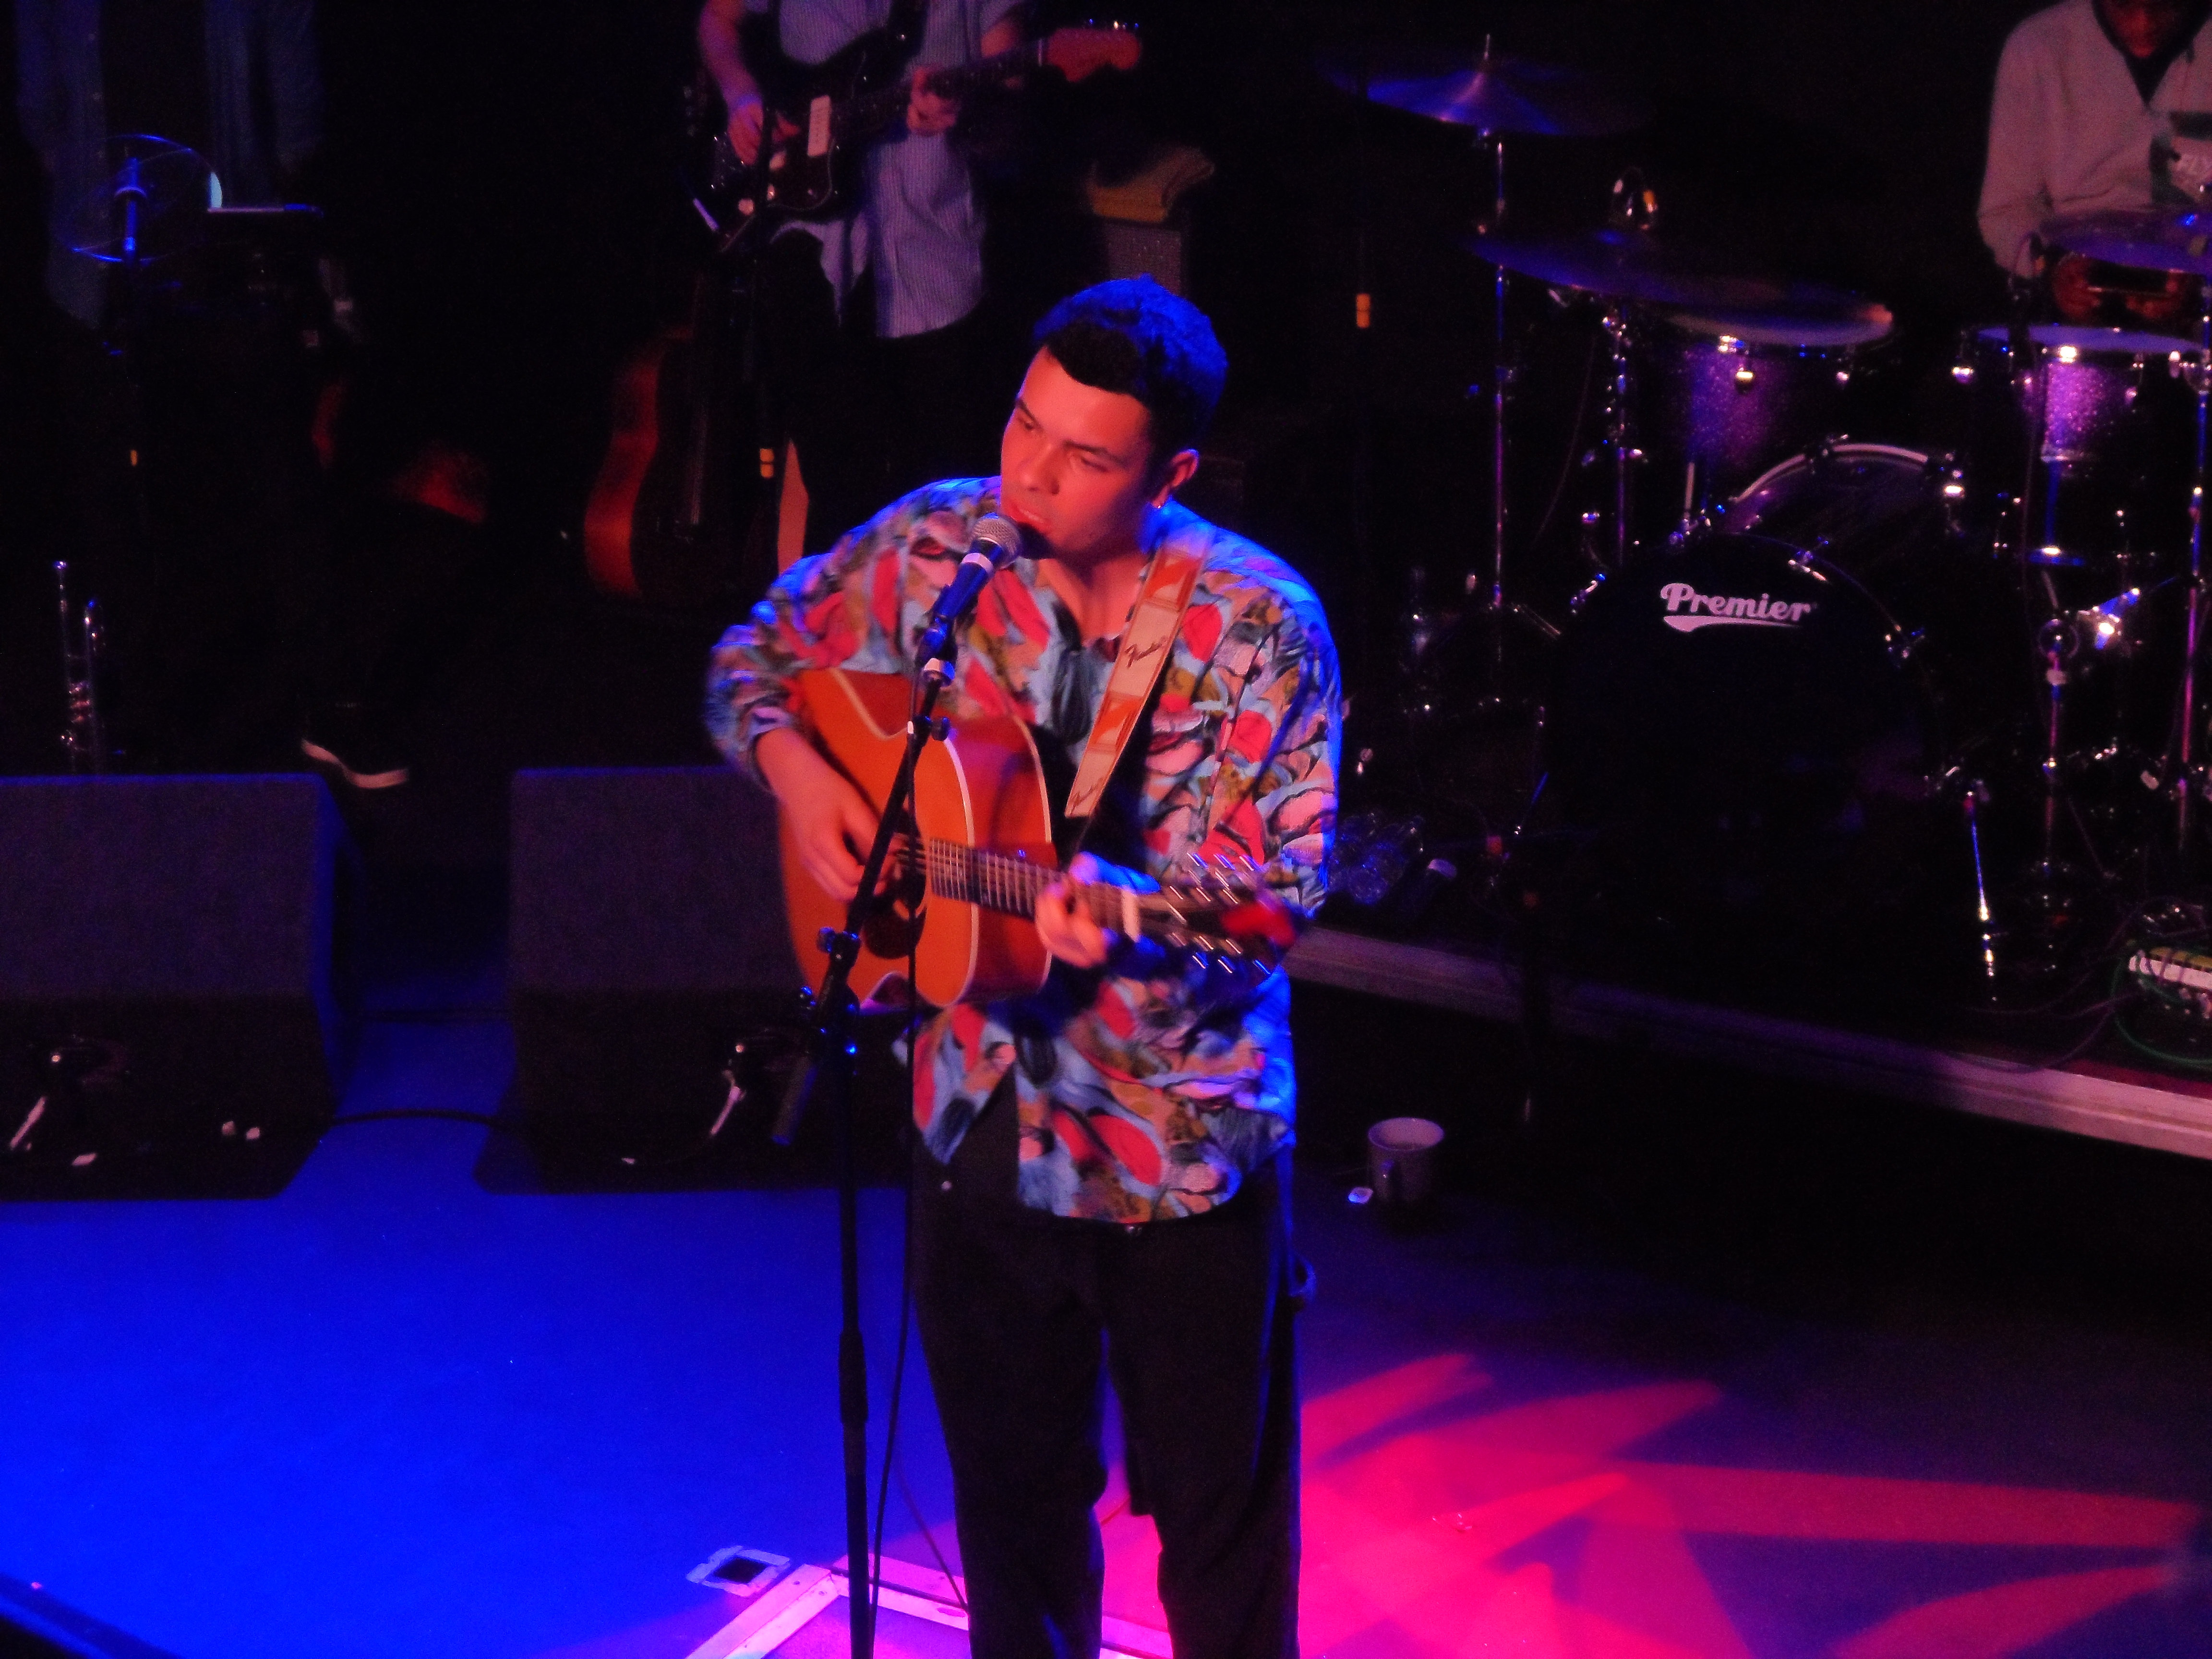 Ady Suleiman Longing For Your Love gig review: ady suleiman live at rescue rooms nottingham